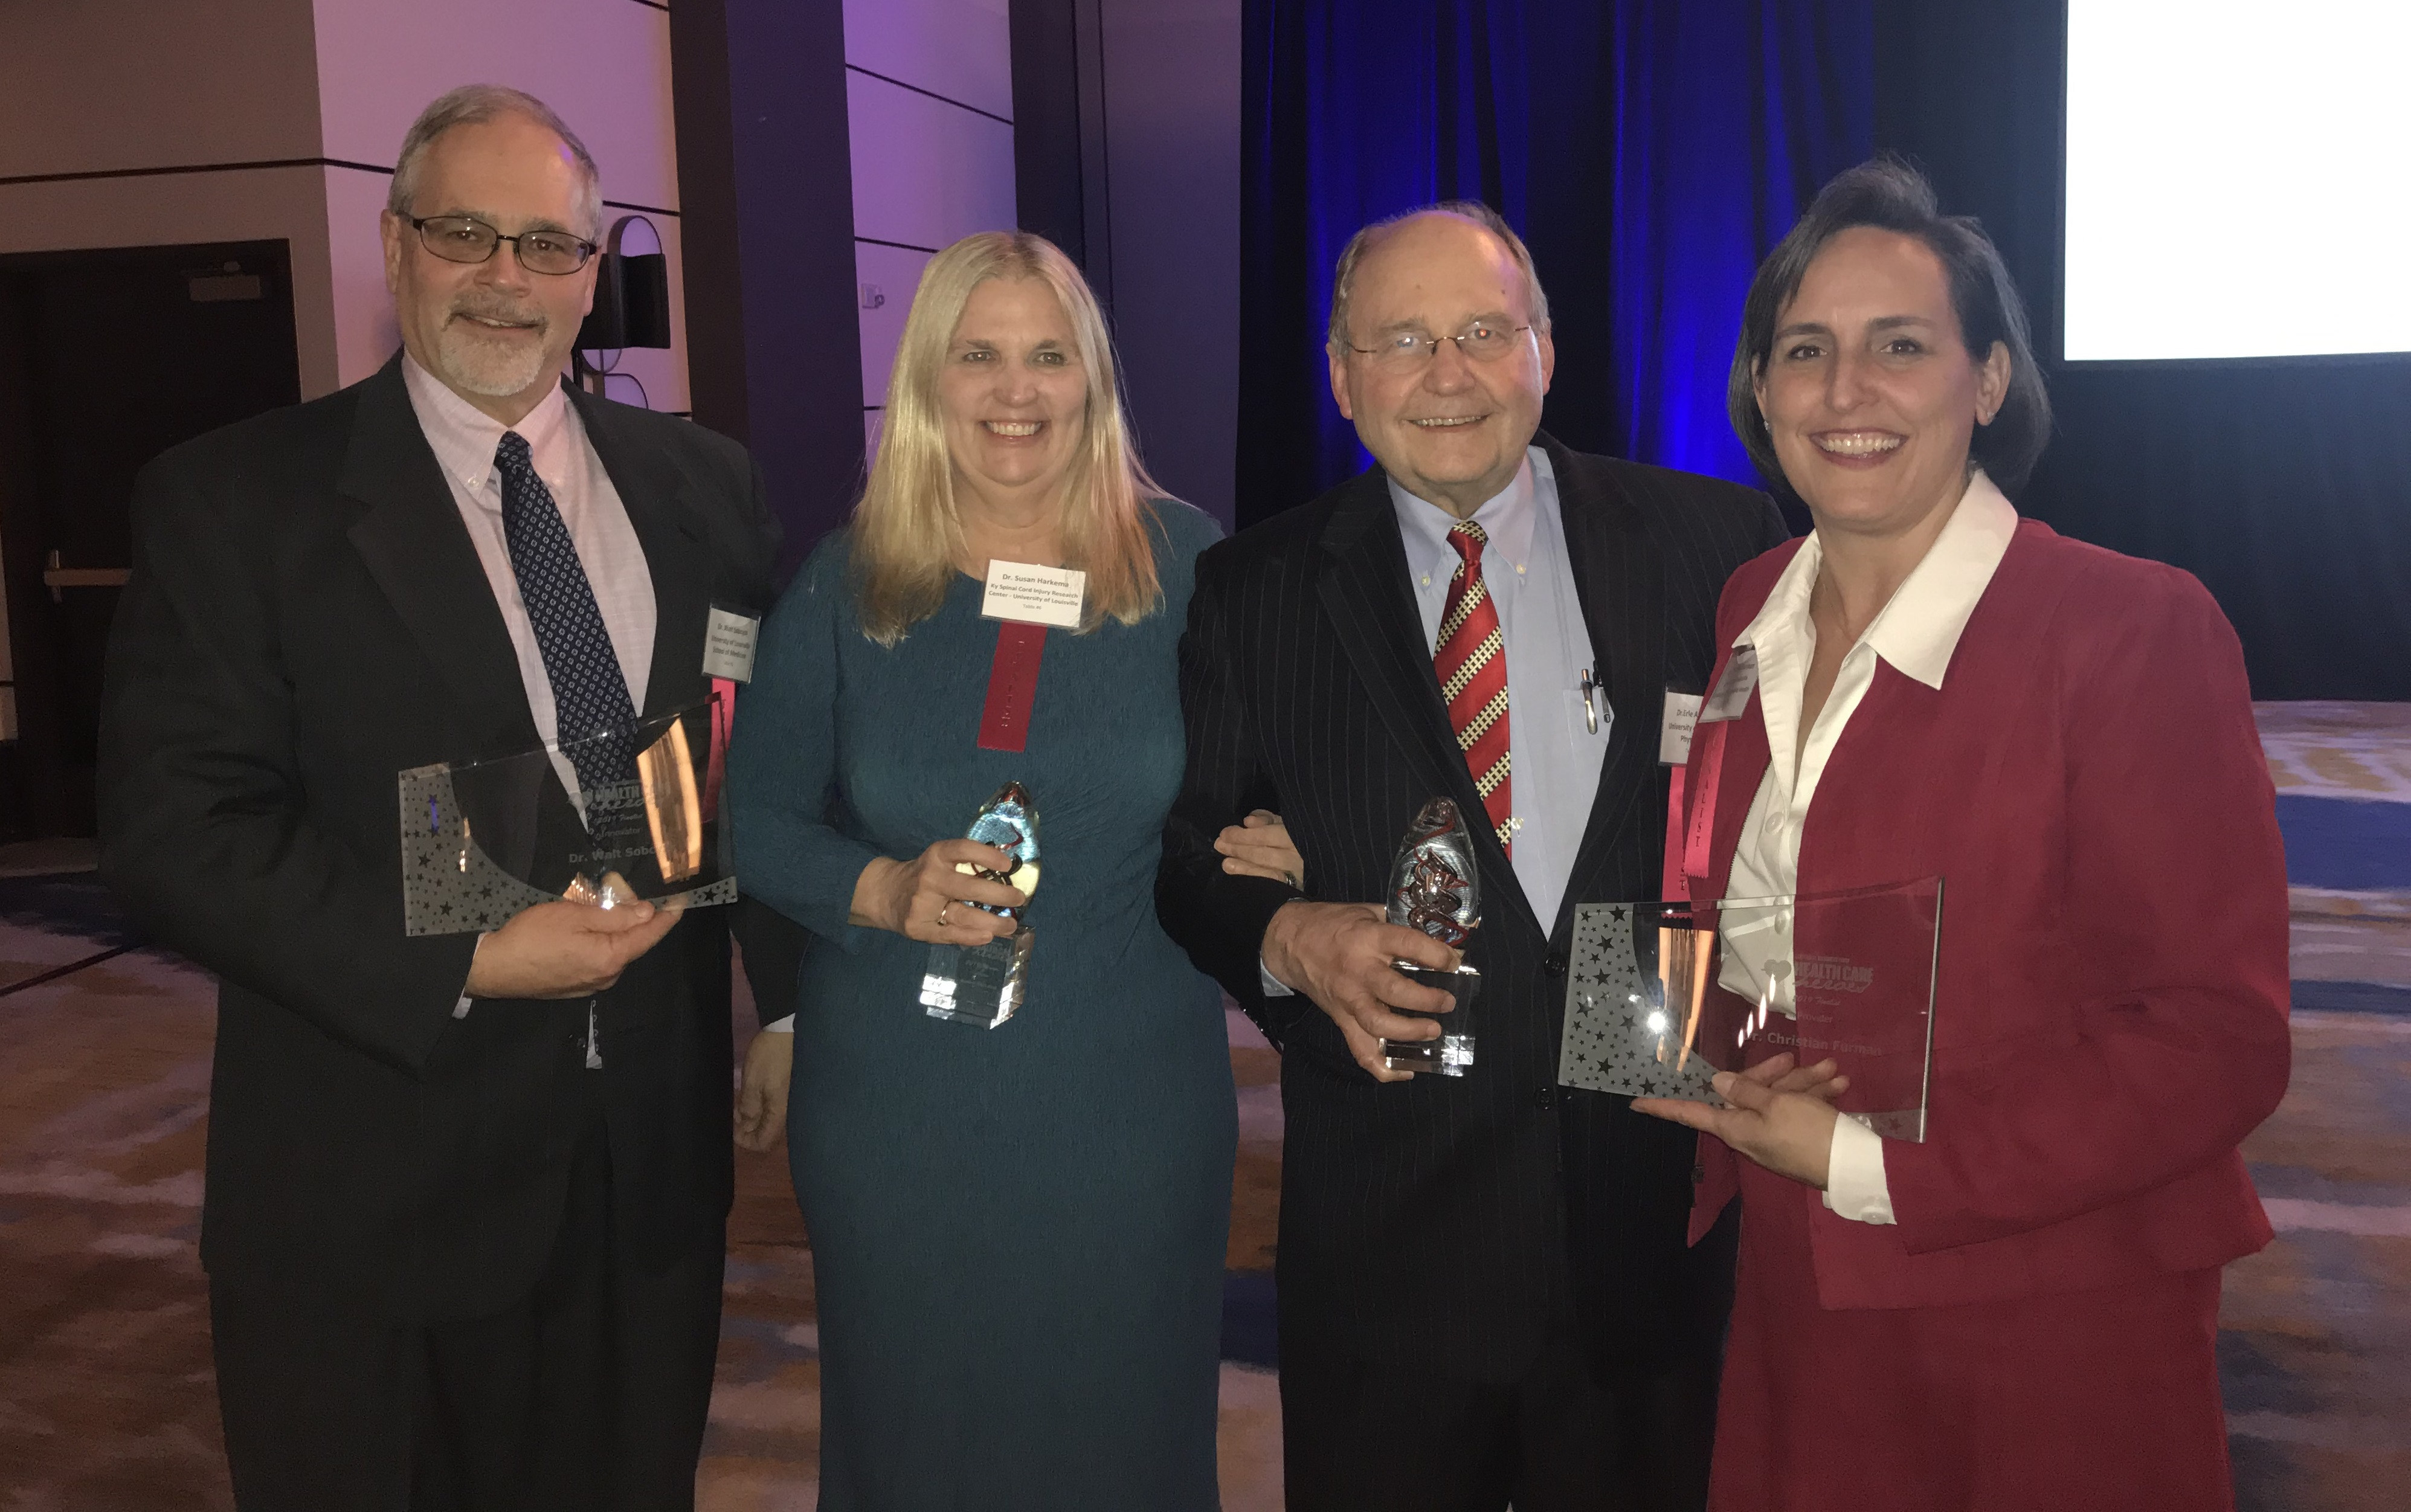 UofL researchers and doctors recognized as Health Care Heroes